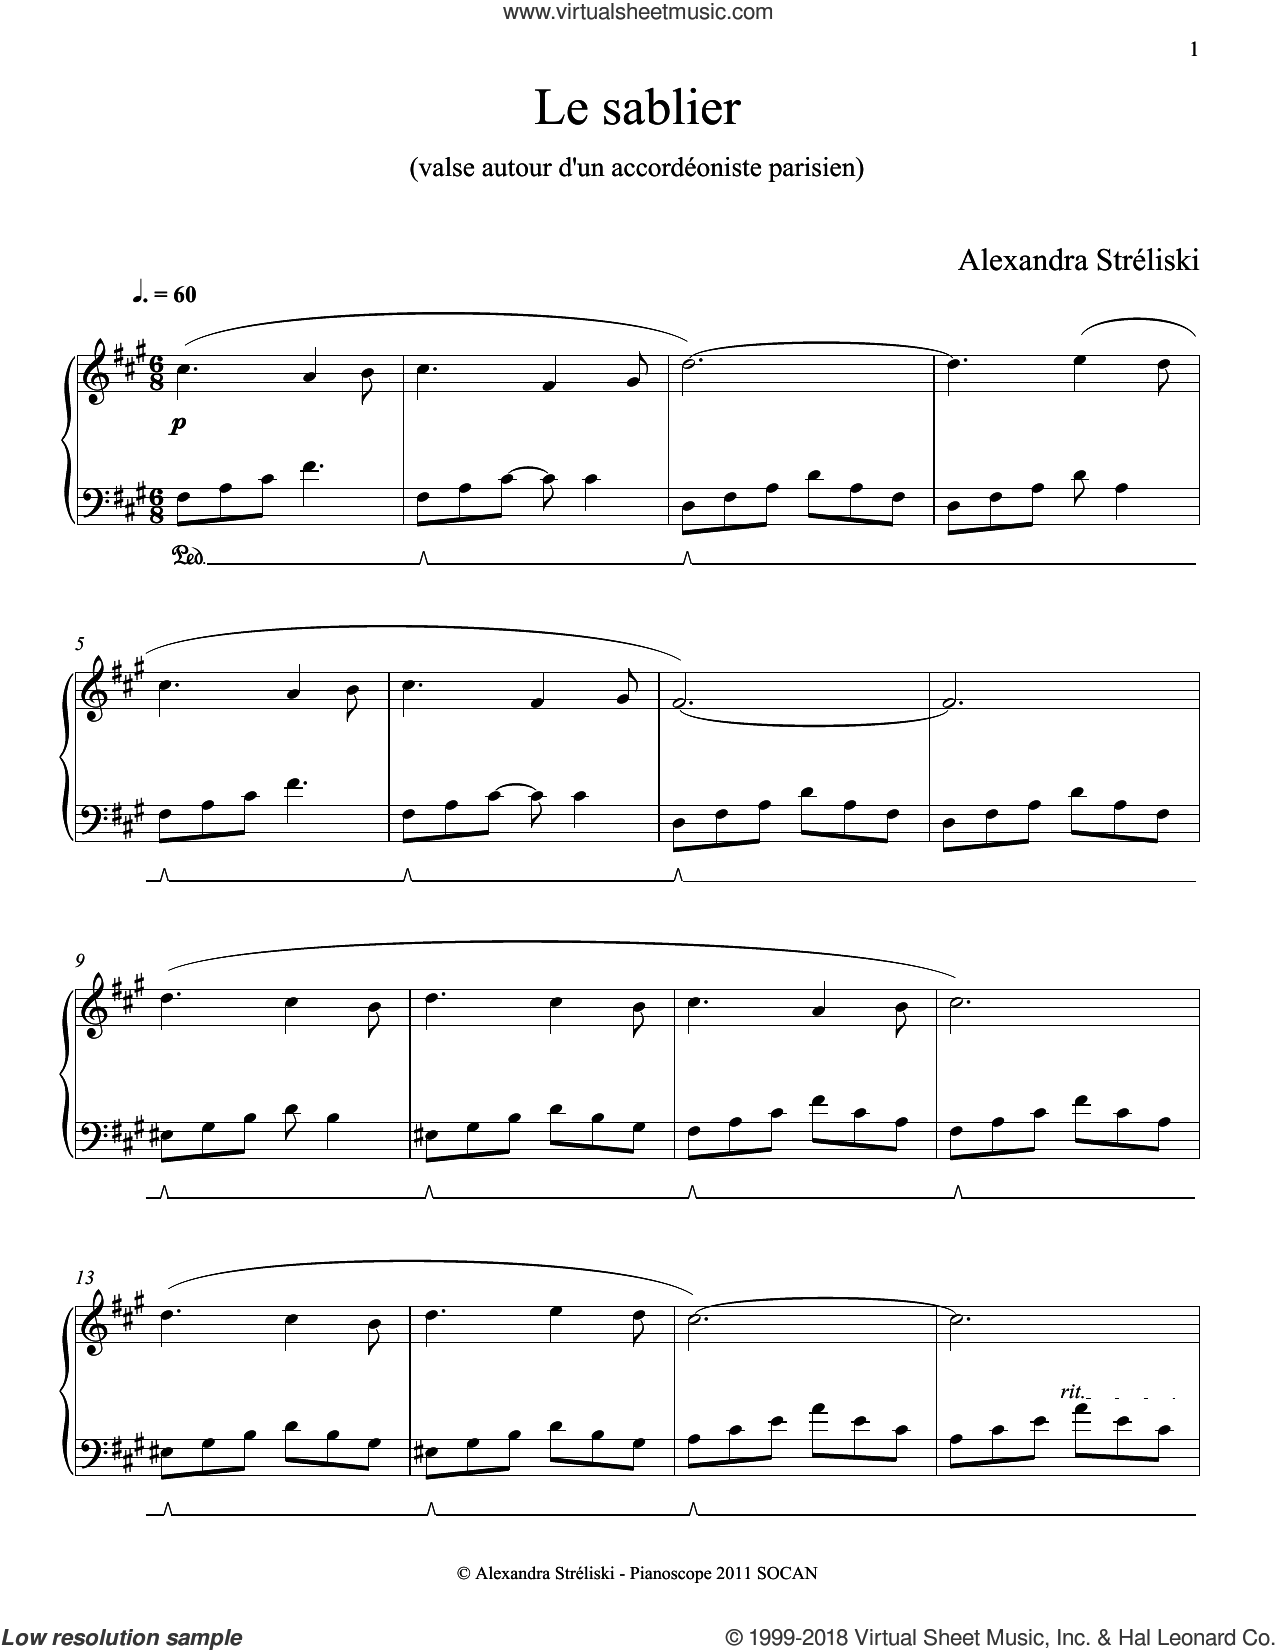 Le sablier sheet music for piano solo by Alexandra Streliski, classical score, intermediate skill level